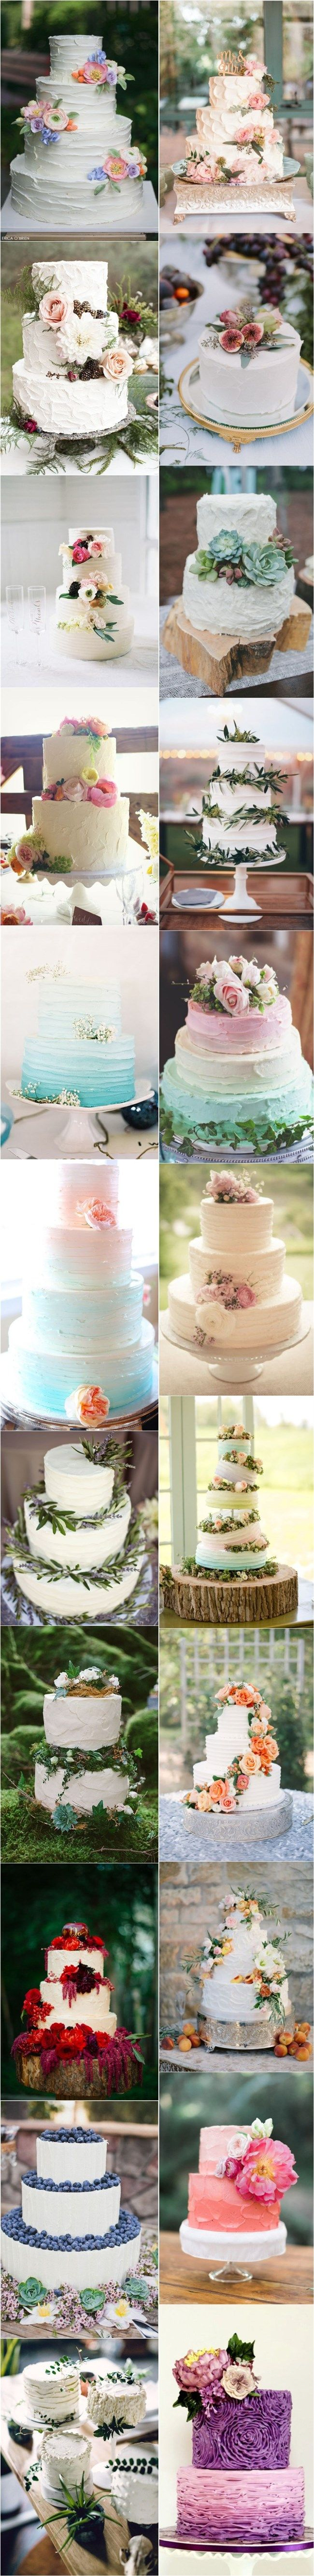 22 unqiue buttercream wedding cakes - Deer Pearl Flowers